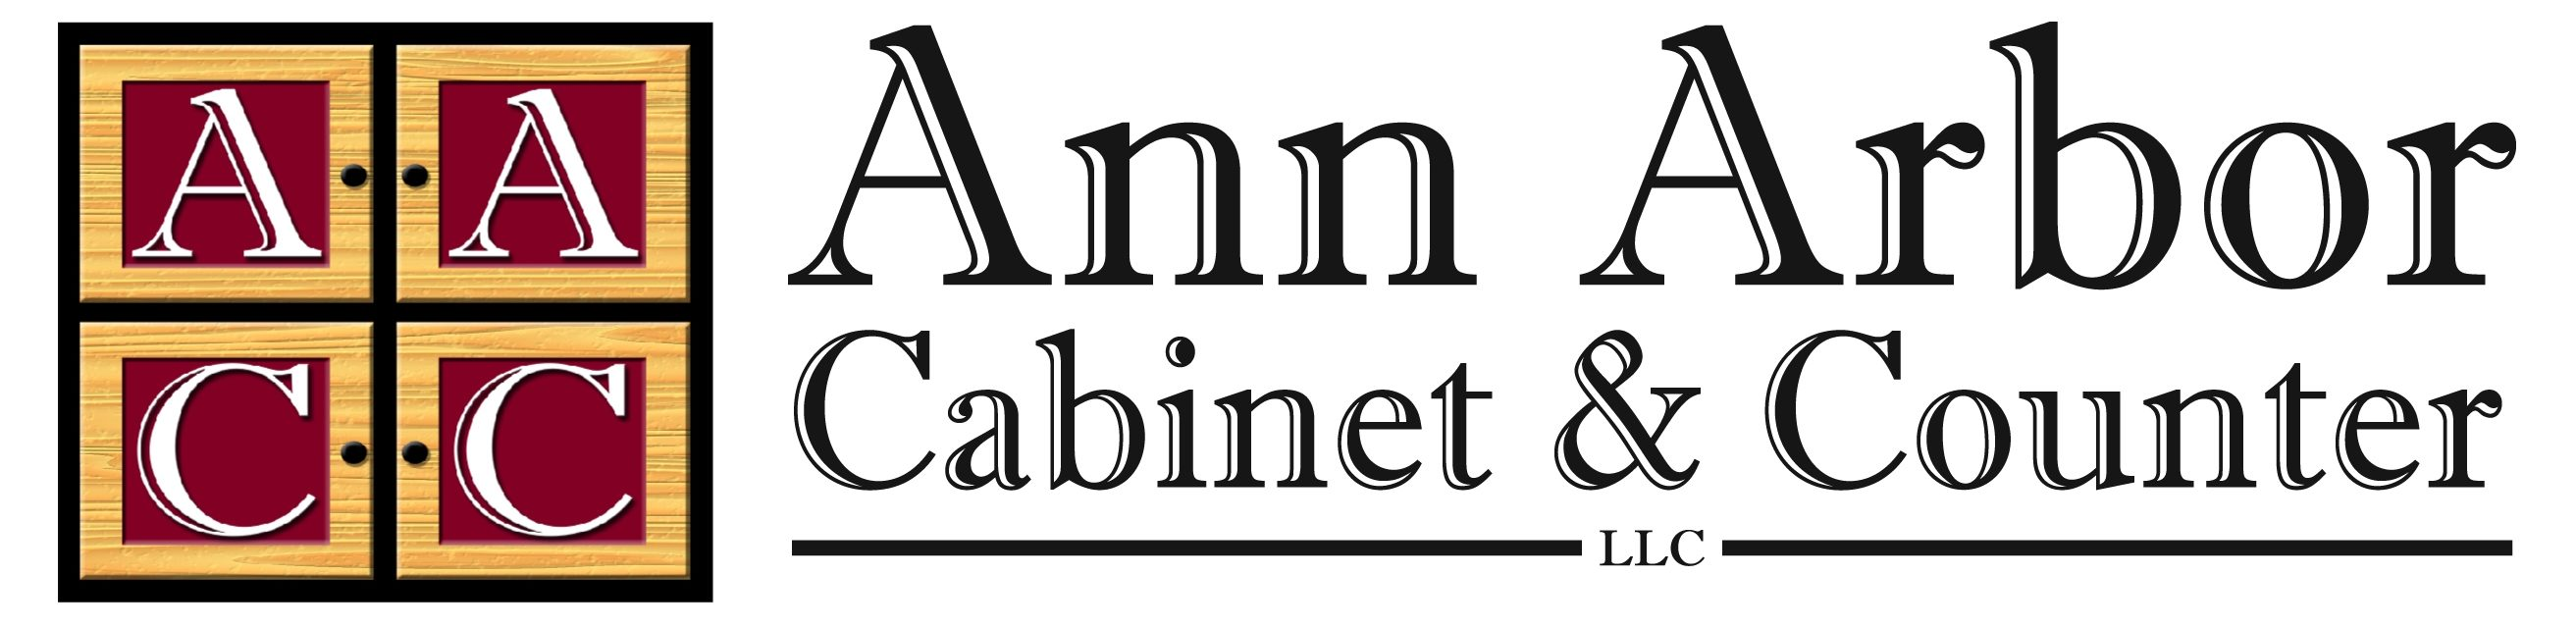 Ann Arbor Cabinet and Counter